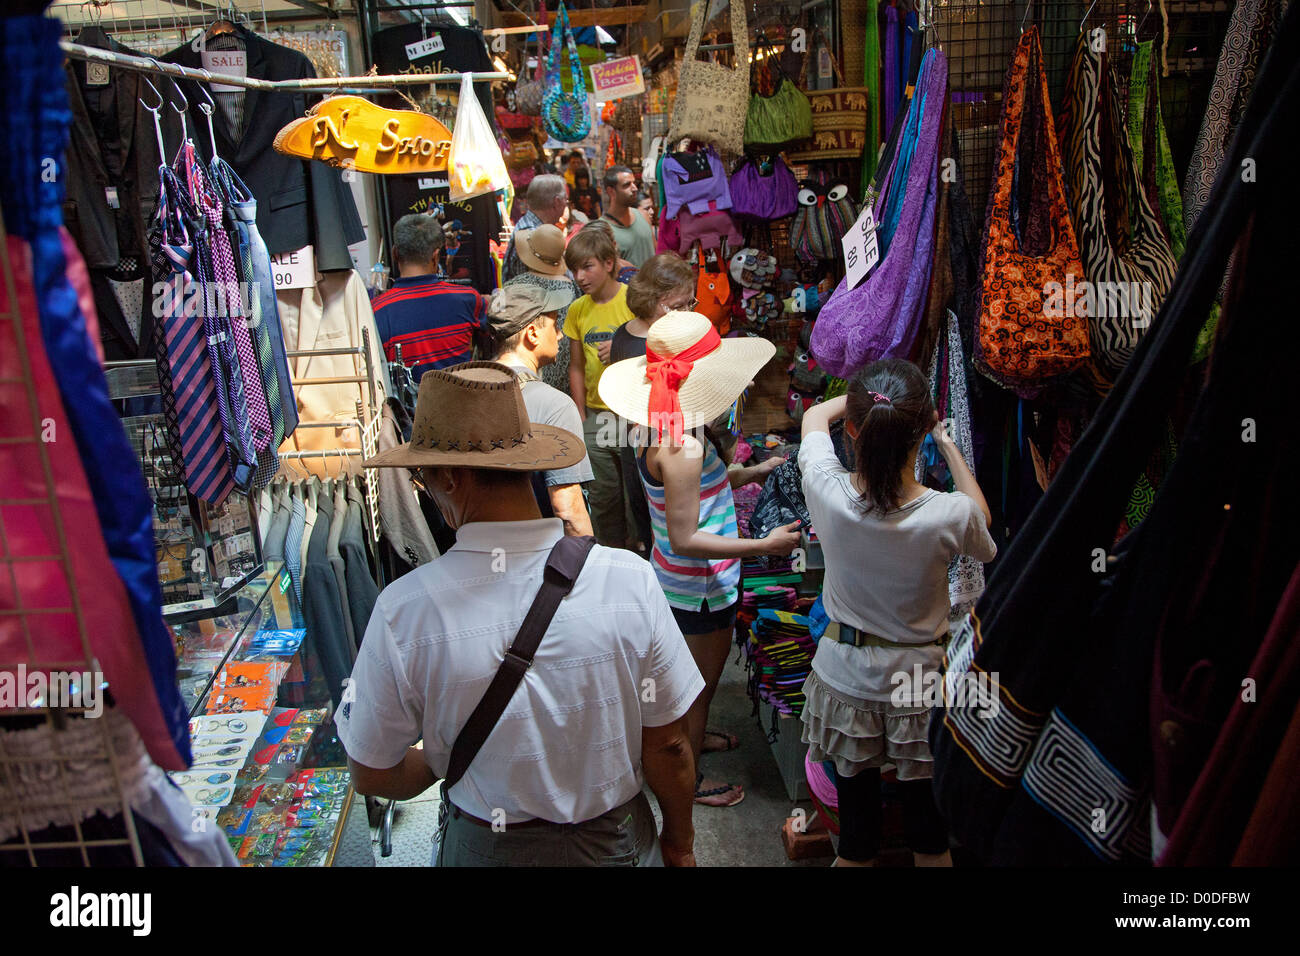 FASHION ACCESSORY SHOP CHATUCHAK WEEKEND MARKET THE BIGGEST MARKET IN ASIA SPREADING OVER 30 ACRES BANGKOK THAILAND - Stock Image